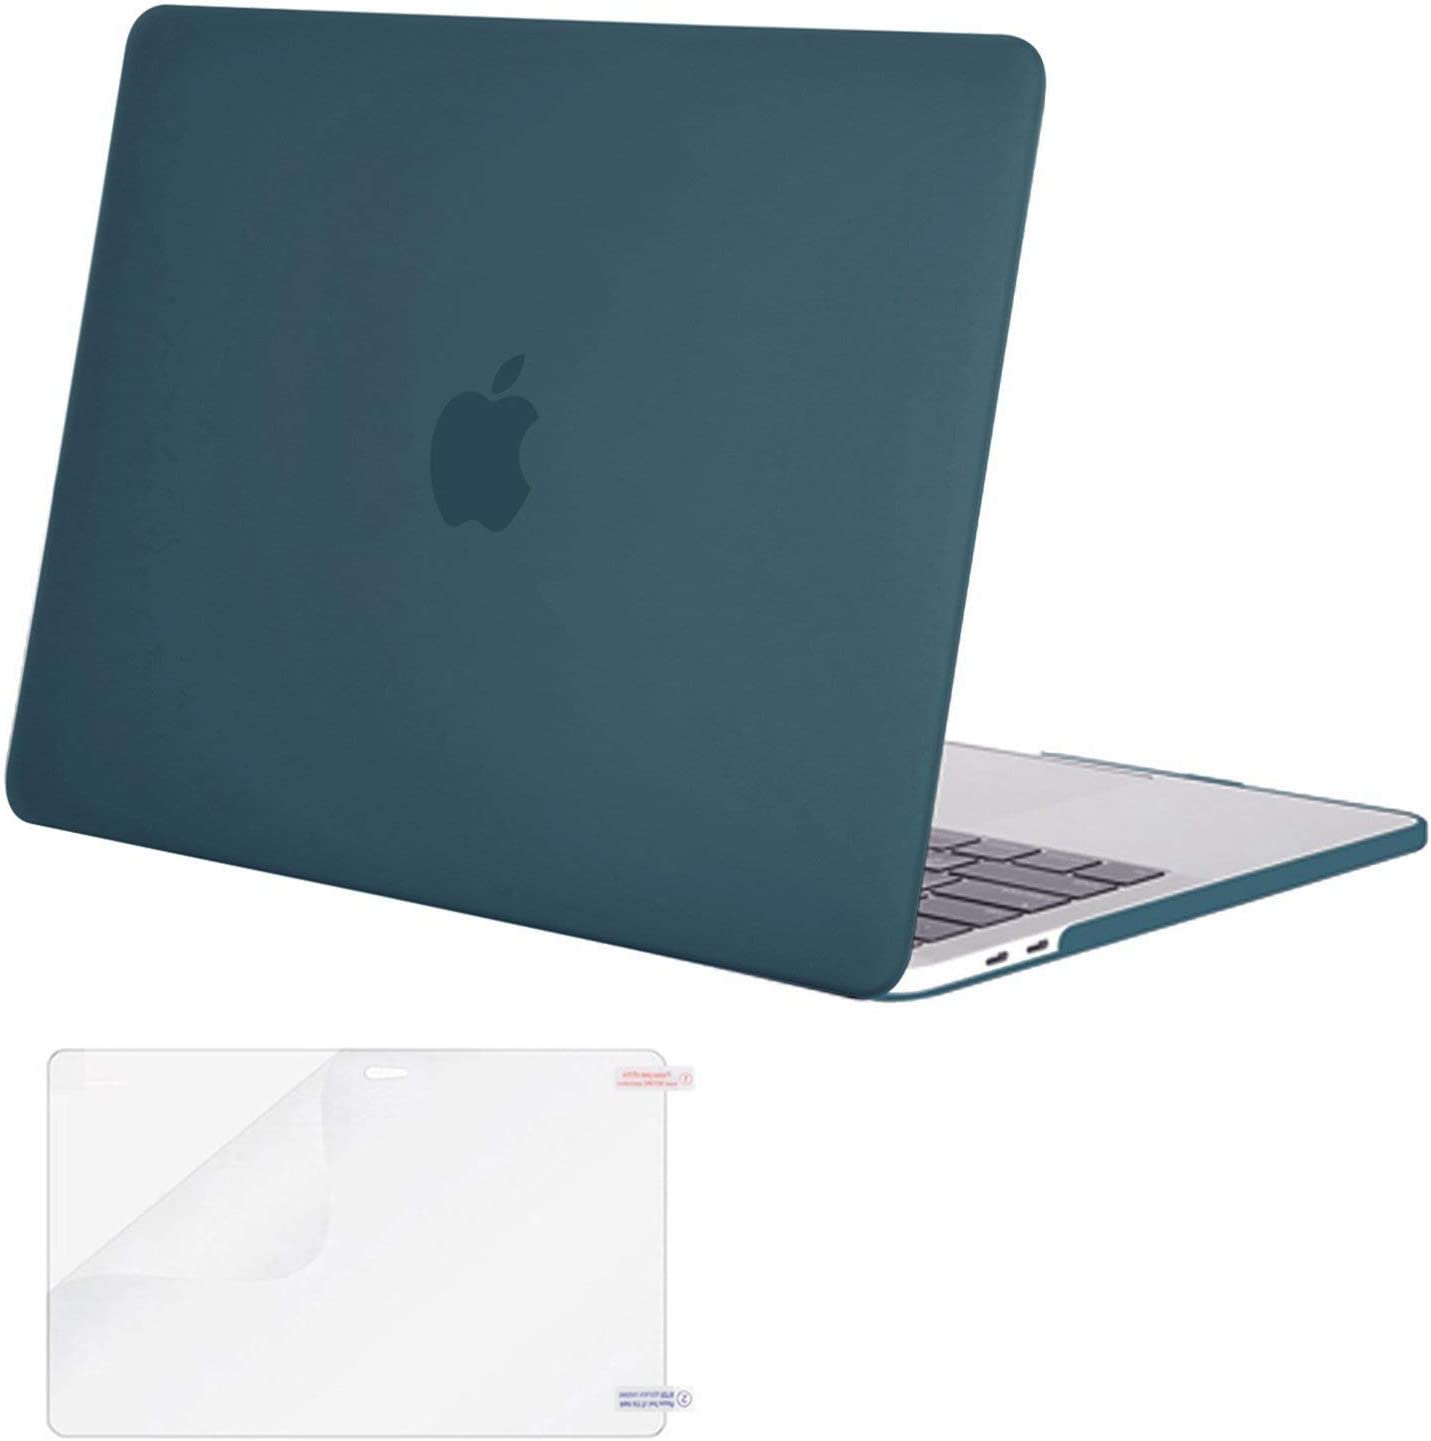 MOSISO MacBook Pro 13 inch Case 2019 2018 2017 2016 Release A2159 A1989 A1706 A1708, Plastic Hard Shell Case&Screen Protector Compatible with MacBook Pro 13 inch with/Without Touch Bar, Deep Teal